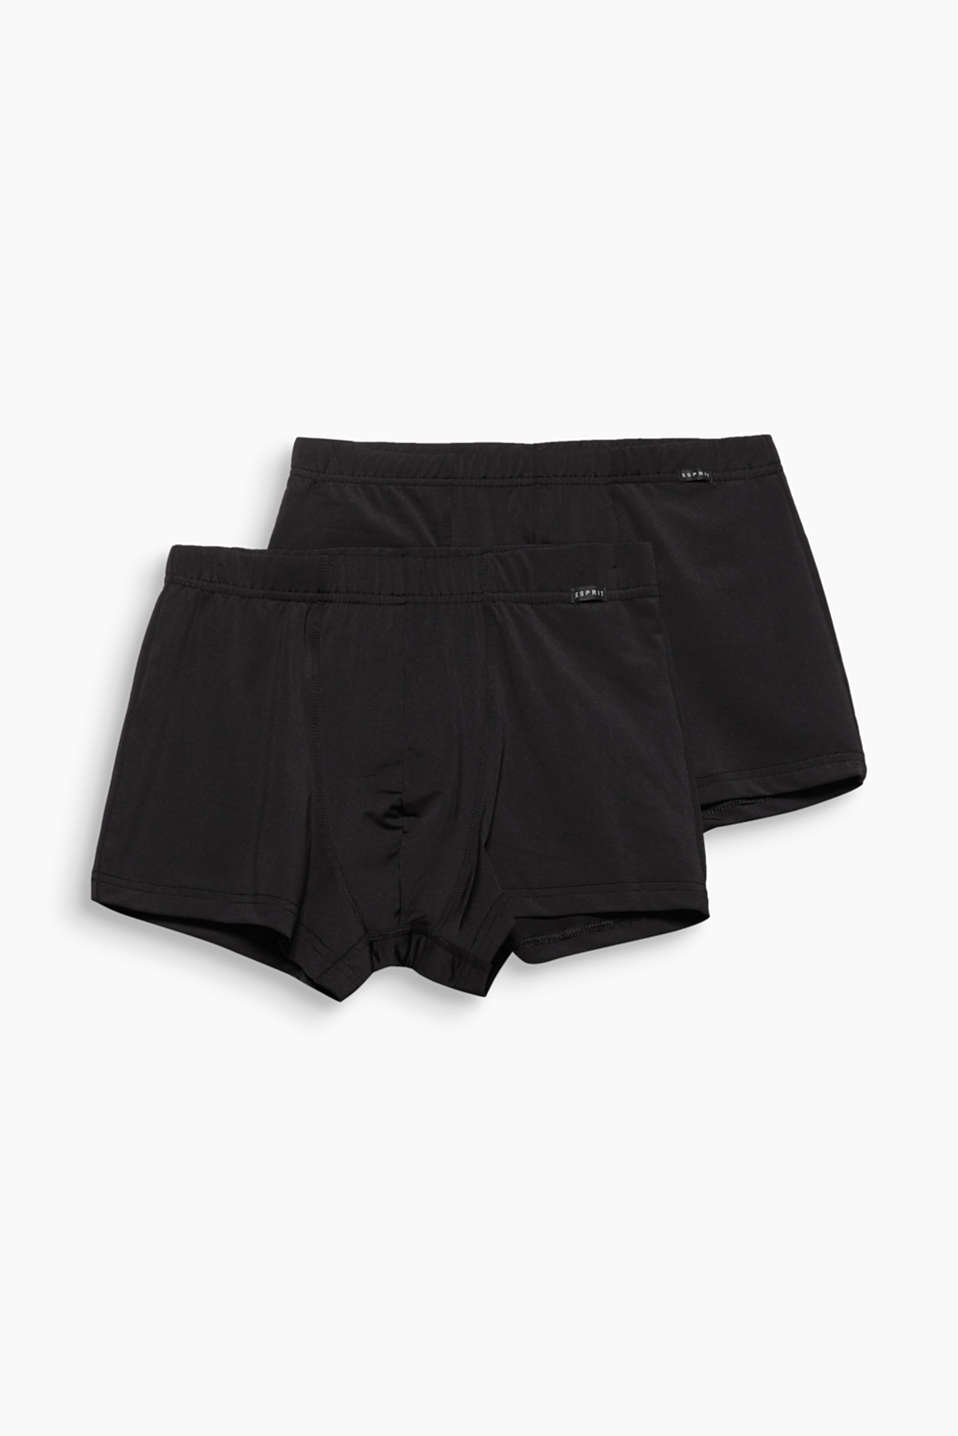 Esprit - 2er-Pack Microfaser-Shorts mit Stretch